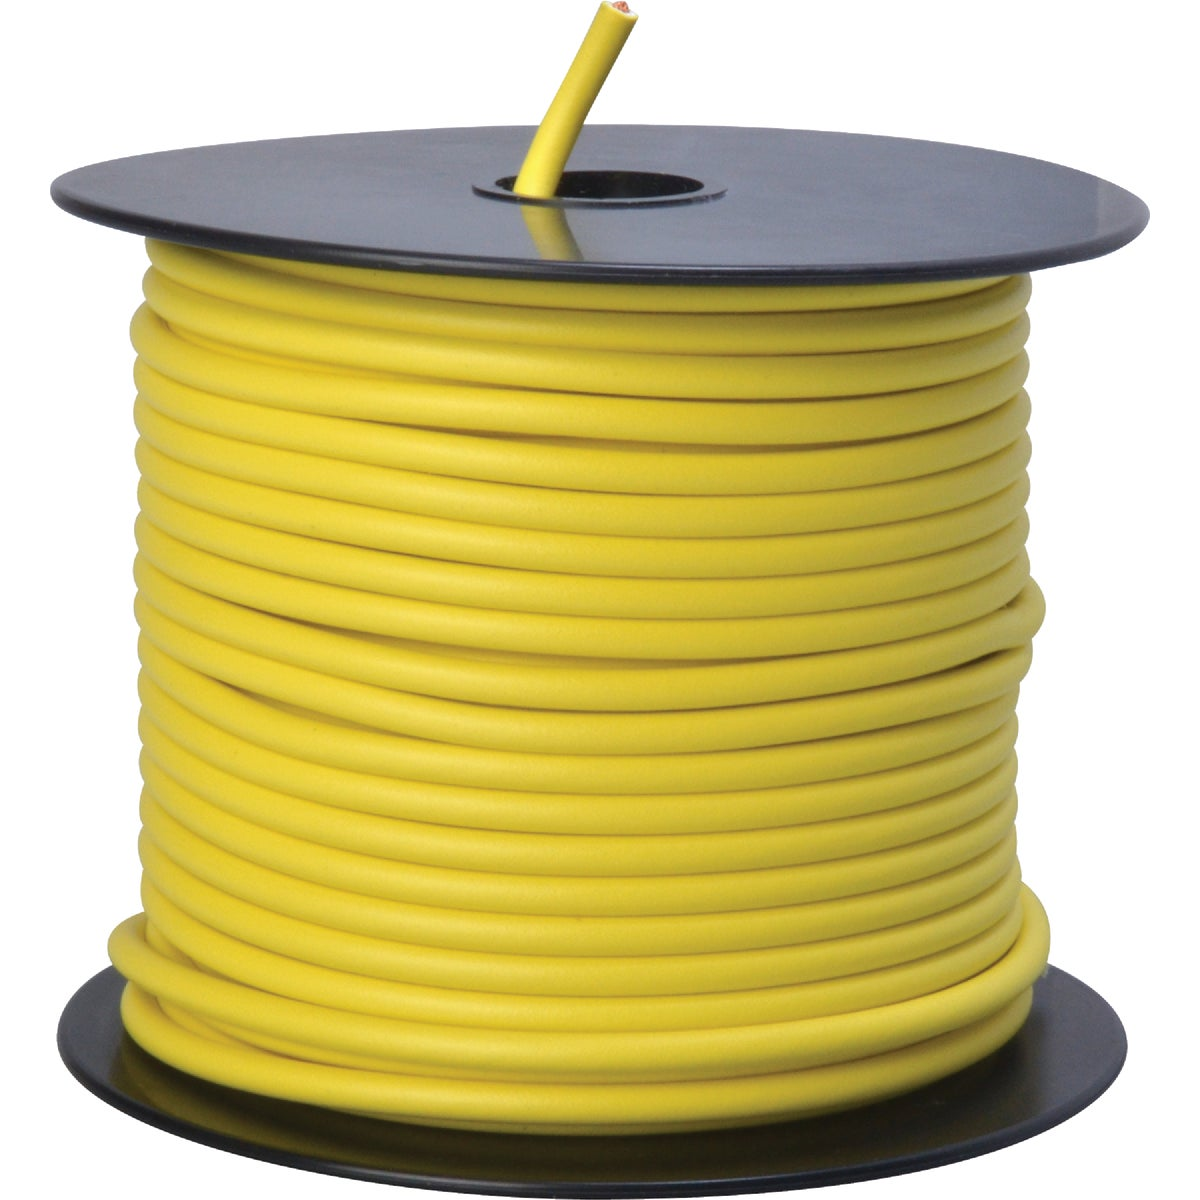 100' 12GA YEL AUTO WIRE - 12-100-14 by Woods Wire Coleman